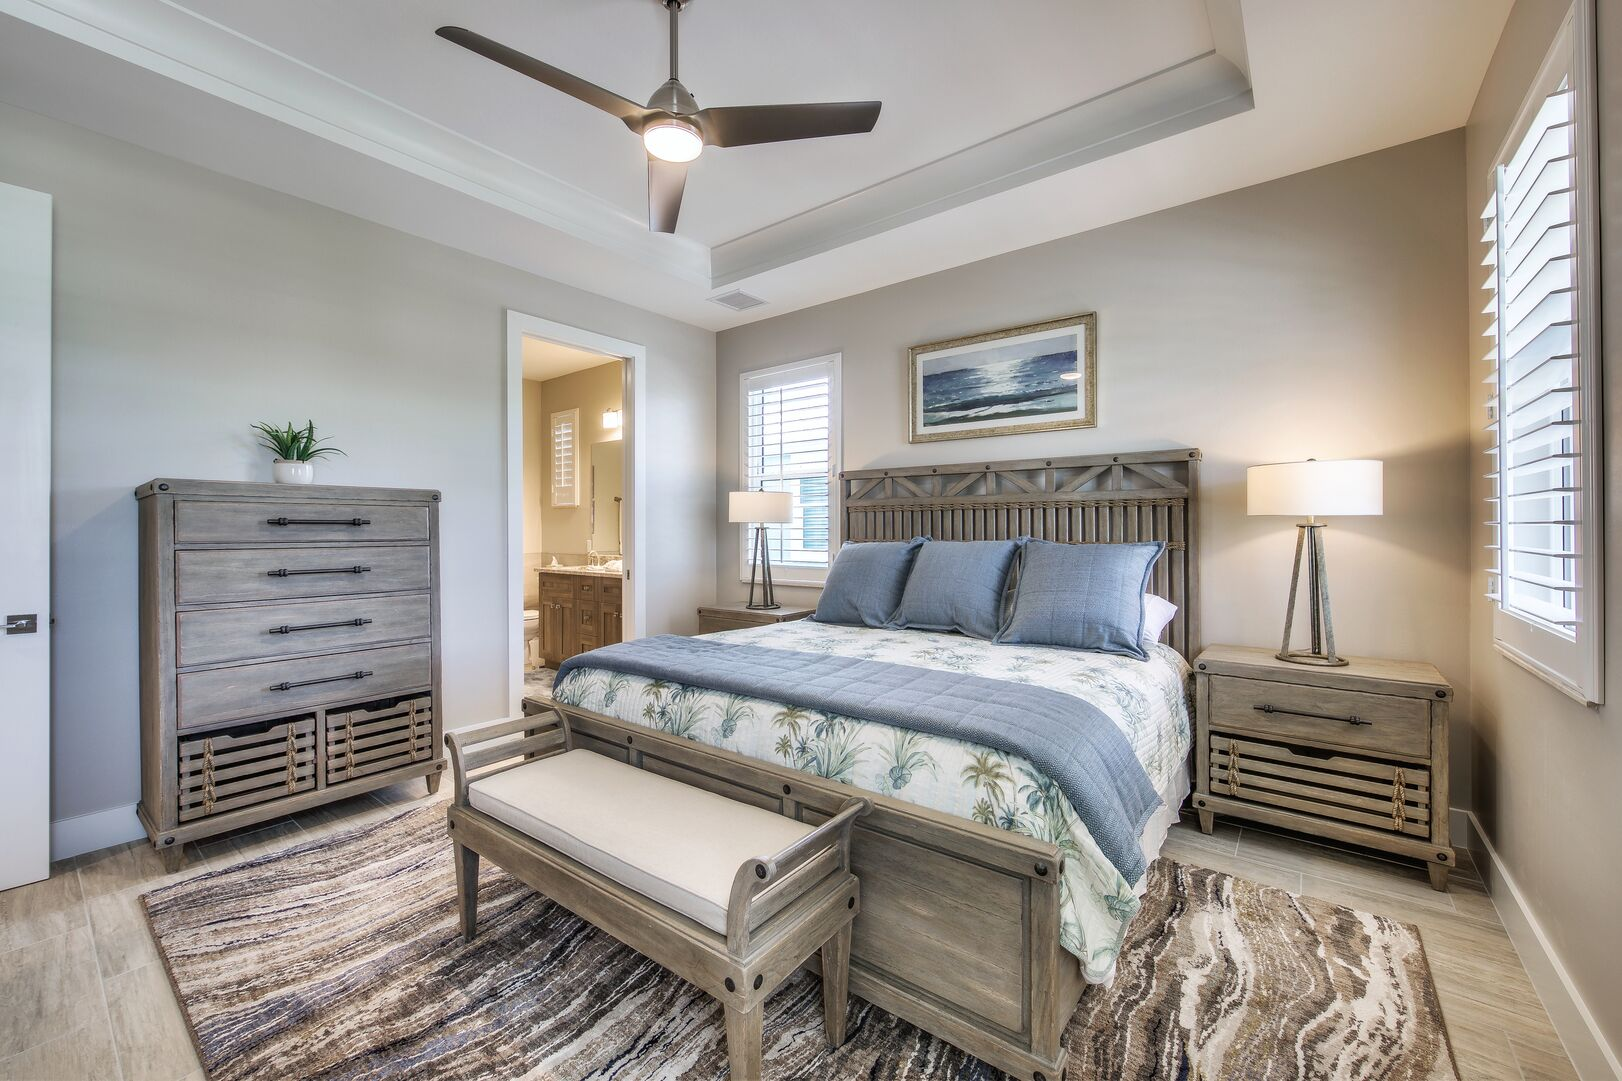 Bedroom with Dressers and Large Bed